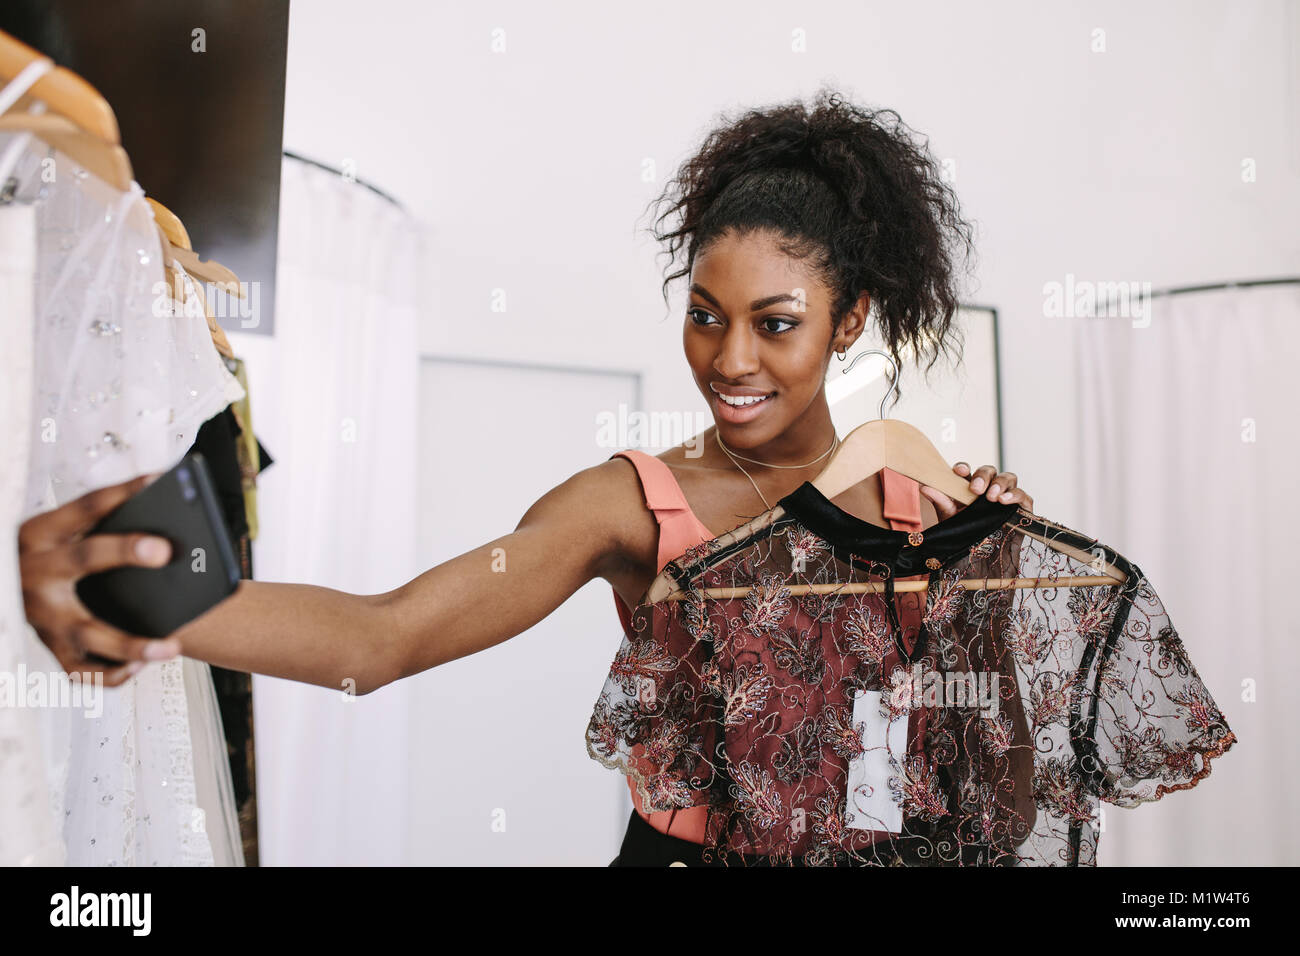 Close up of a fashion designer taking a selfie with a designer dresses in her fashion studio. Customer taking a - Stock Image